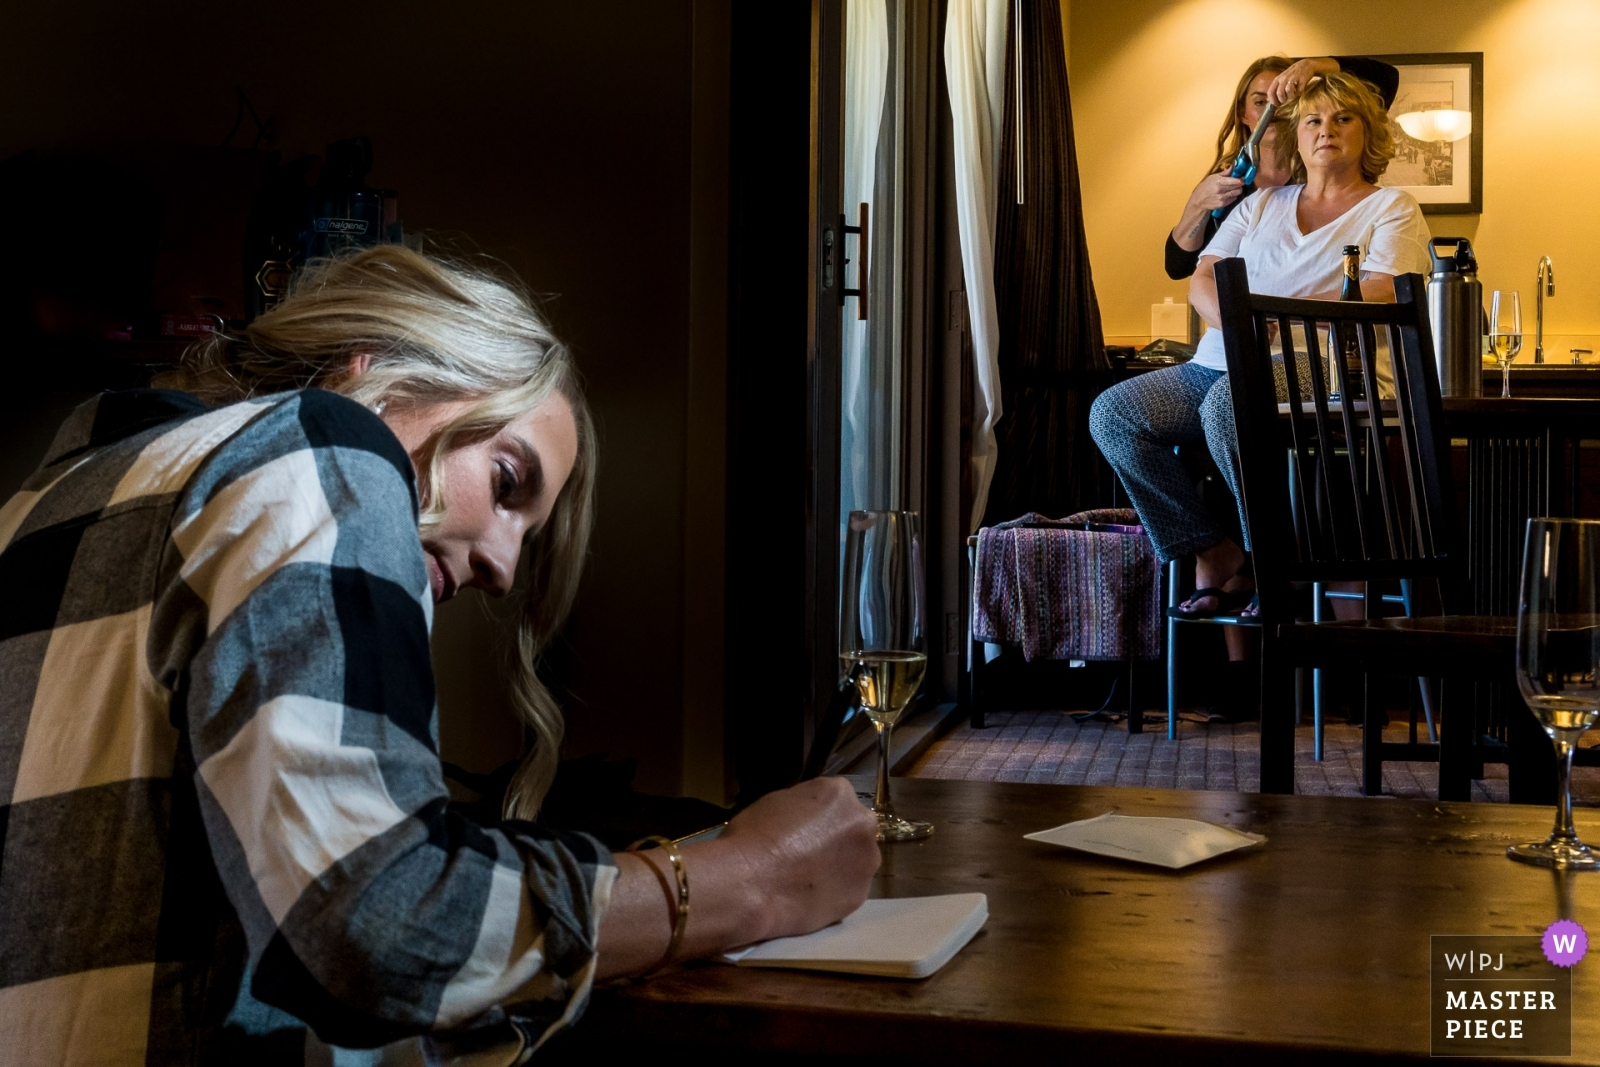 Bride finishing vows while mom gets hair done. - Denver, Colorado Wedding Photography -  | Telluride Peaks Resort